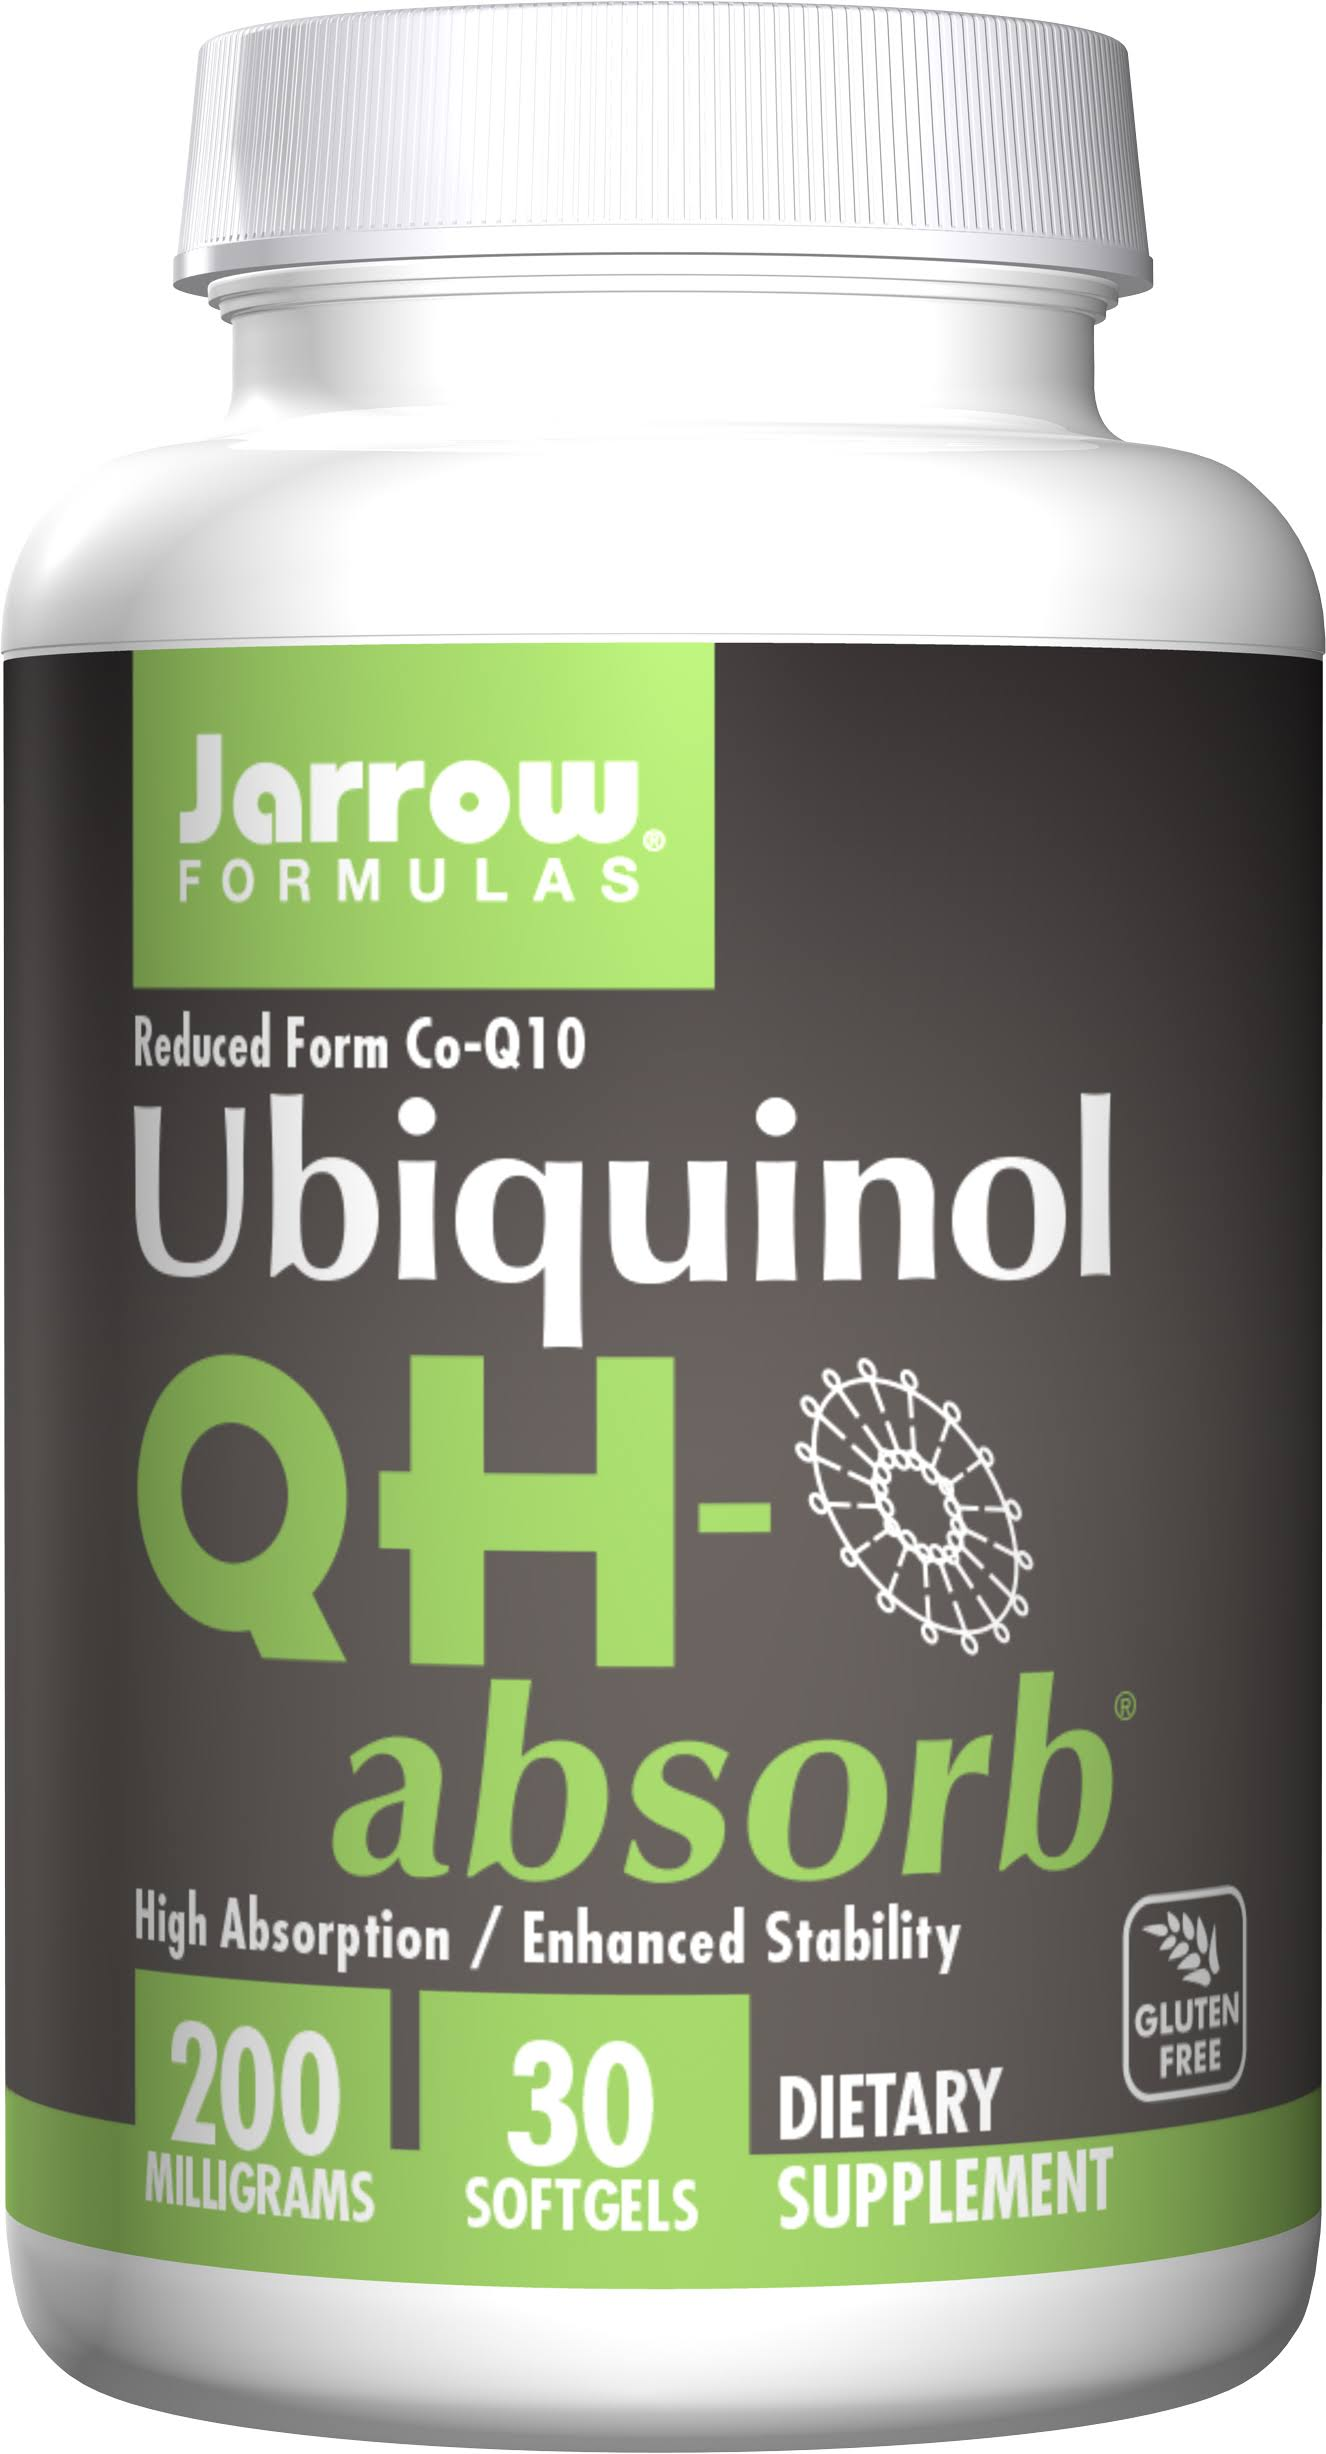 Jarrow Formulas QH-Absorb - 200 mg, 30 ct